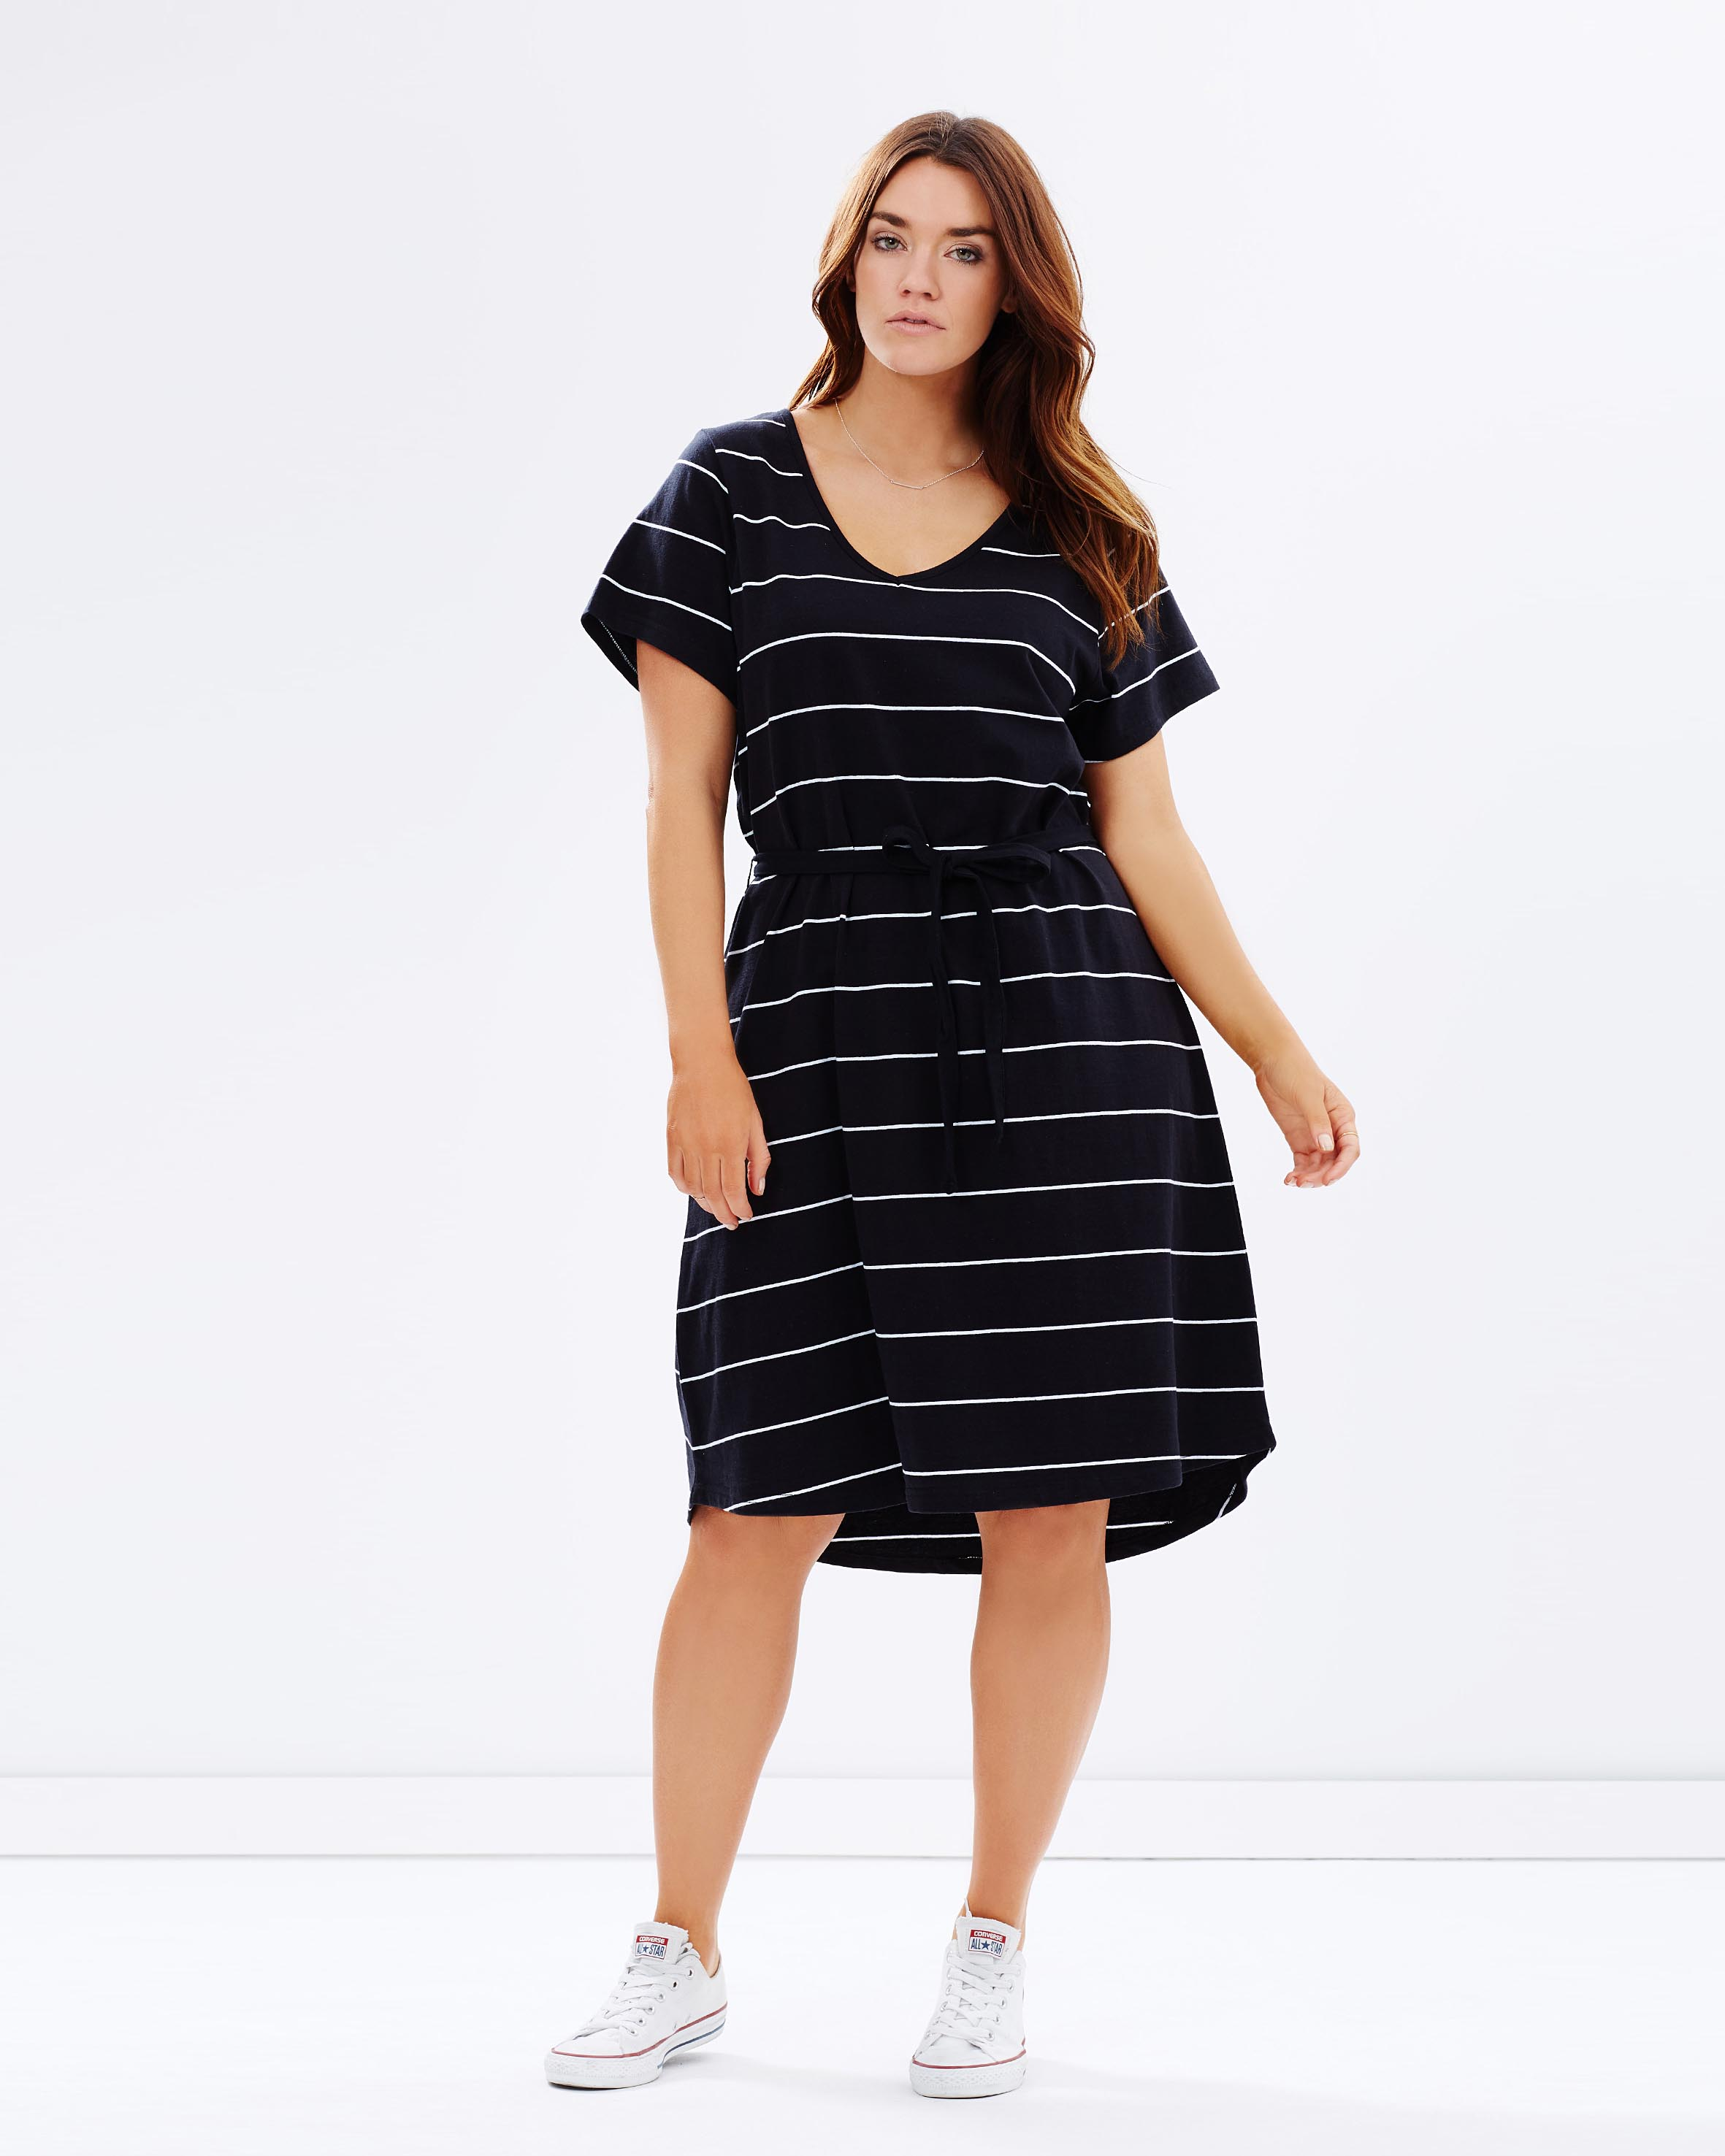 Our collections include plus size formal dresses, plus size cocktail dresses, plus size maxi dresses, wrap dresses, bridal gowns, tops, and many more. Kiyonna's goal is to provide beautiful and classy styles that will look great on all curvy women.